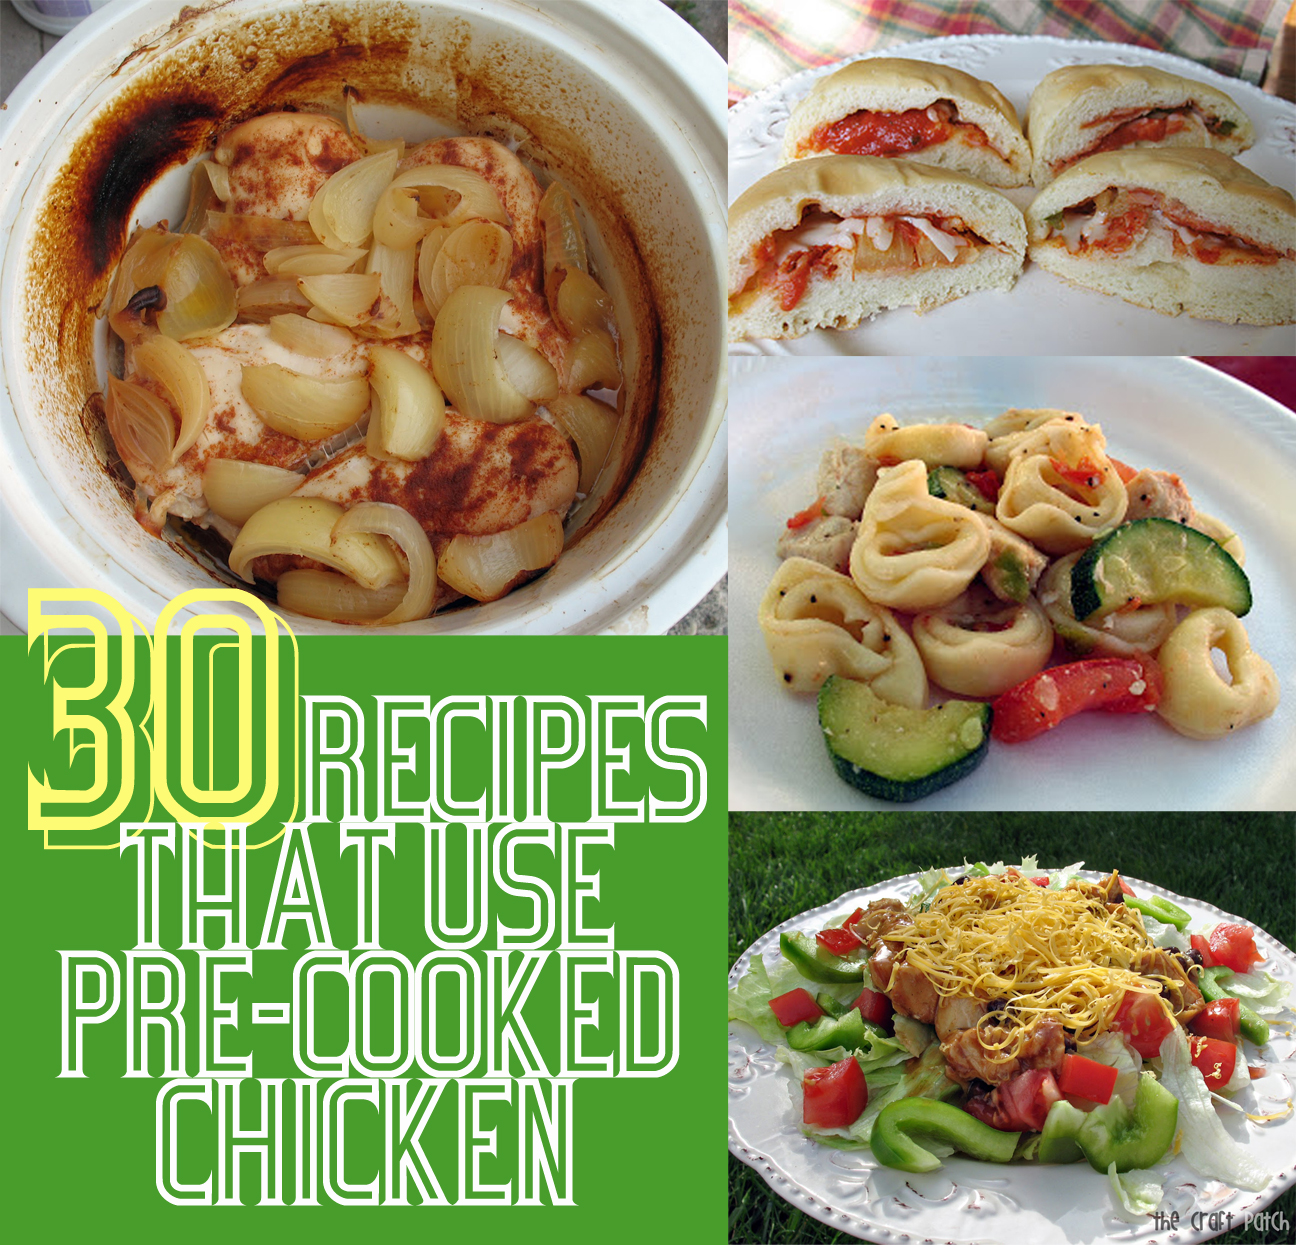 Recipes using cooked chicken